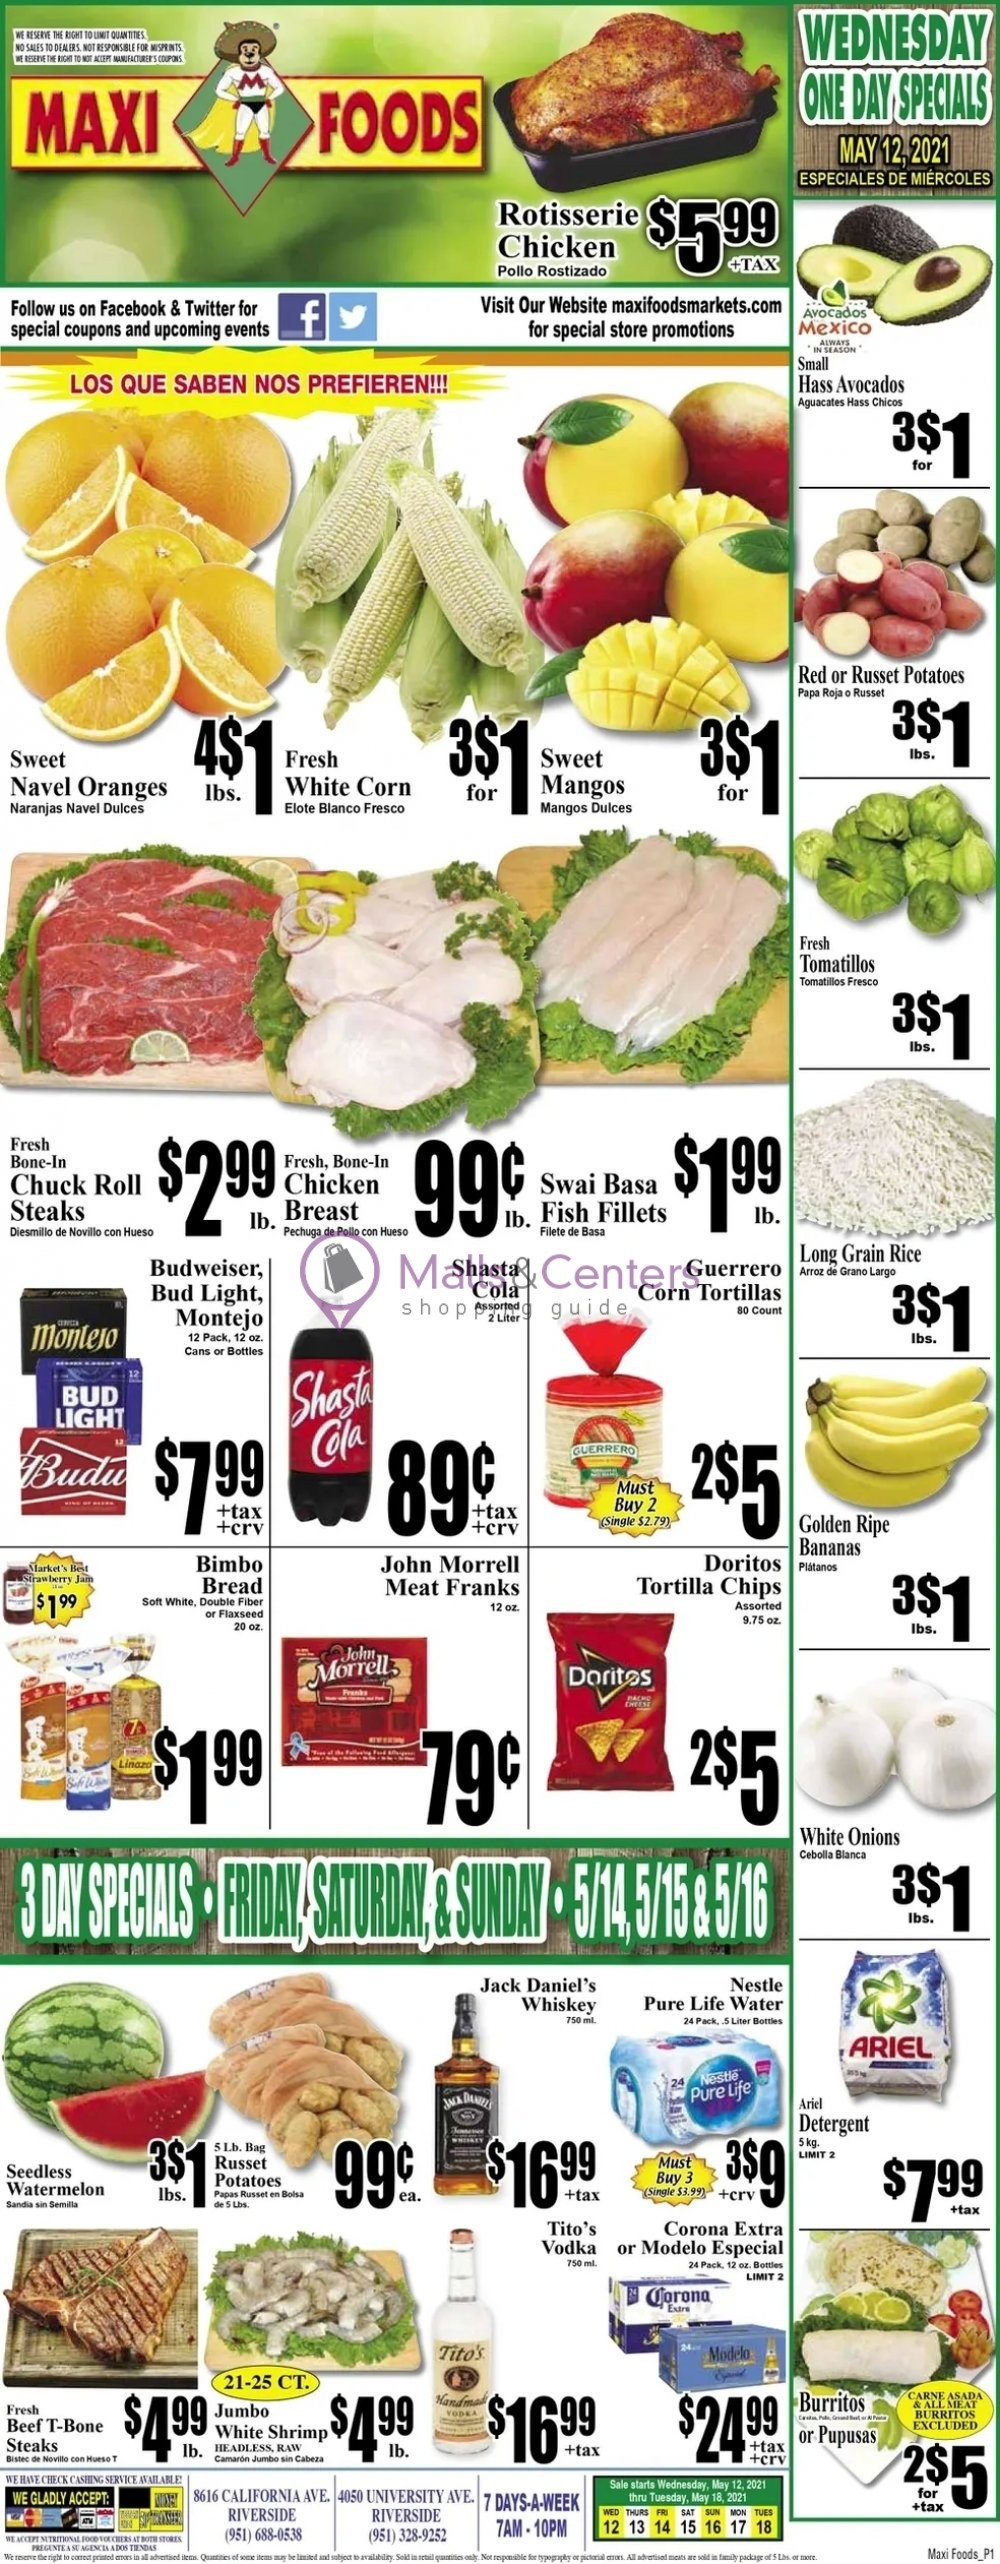 weekly ads Maxi Foods Markets - page 1 - mallscenters.com